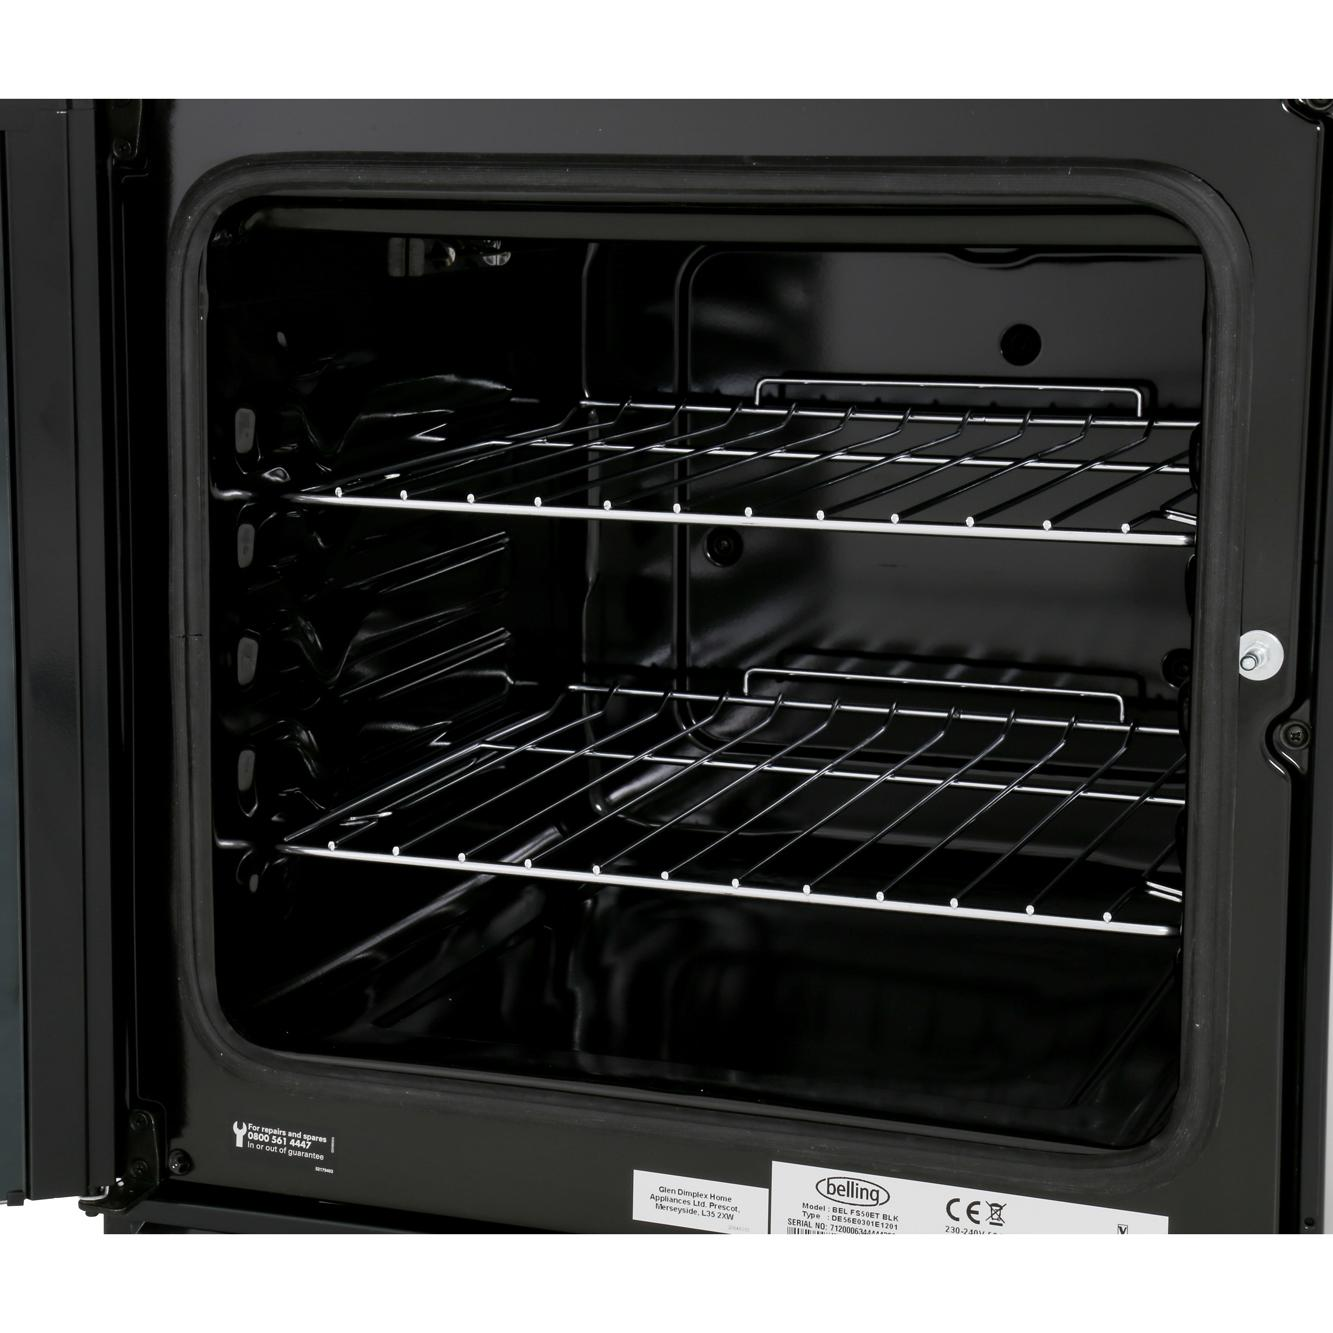 glen by belling electric cooker manual